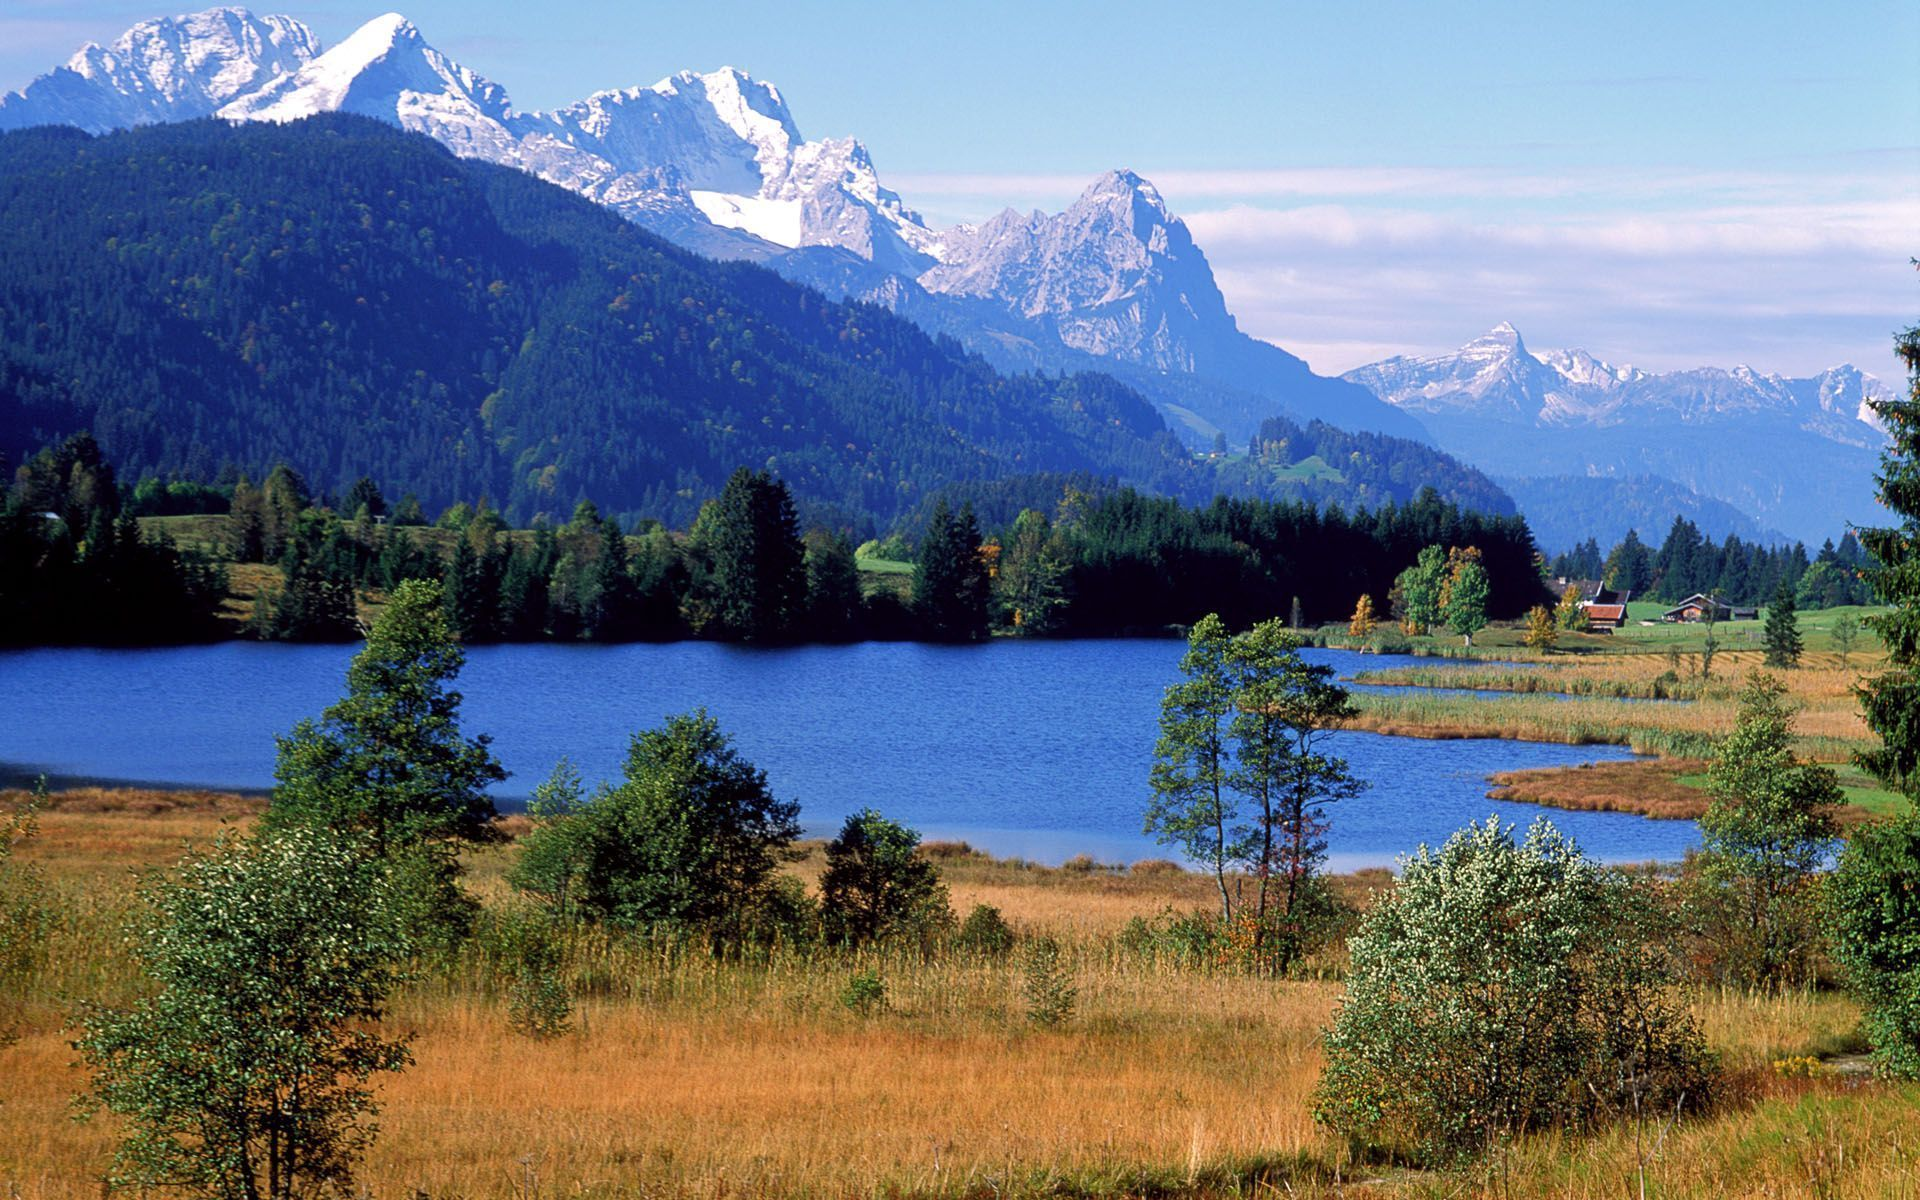 47621 download wallpaper Landscape, Nature, Lakes screensavers and pictures for free